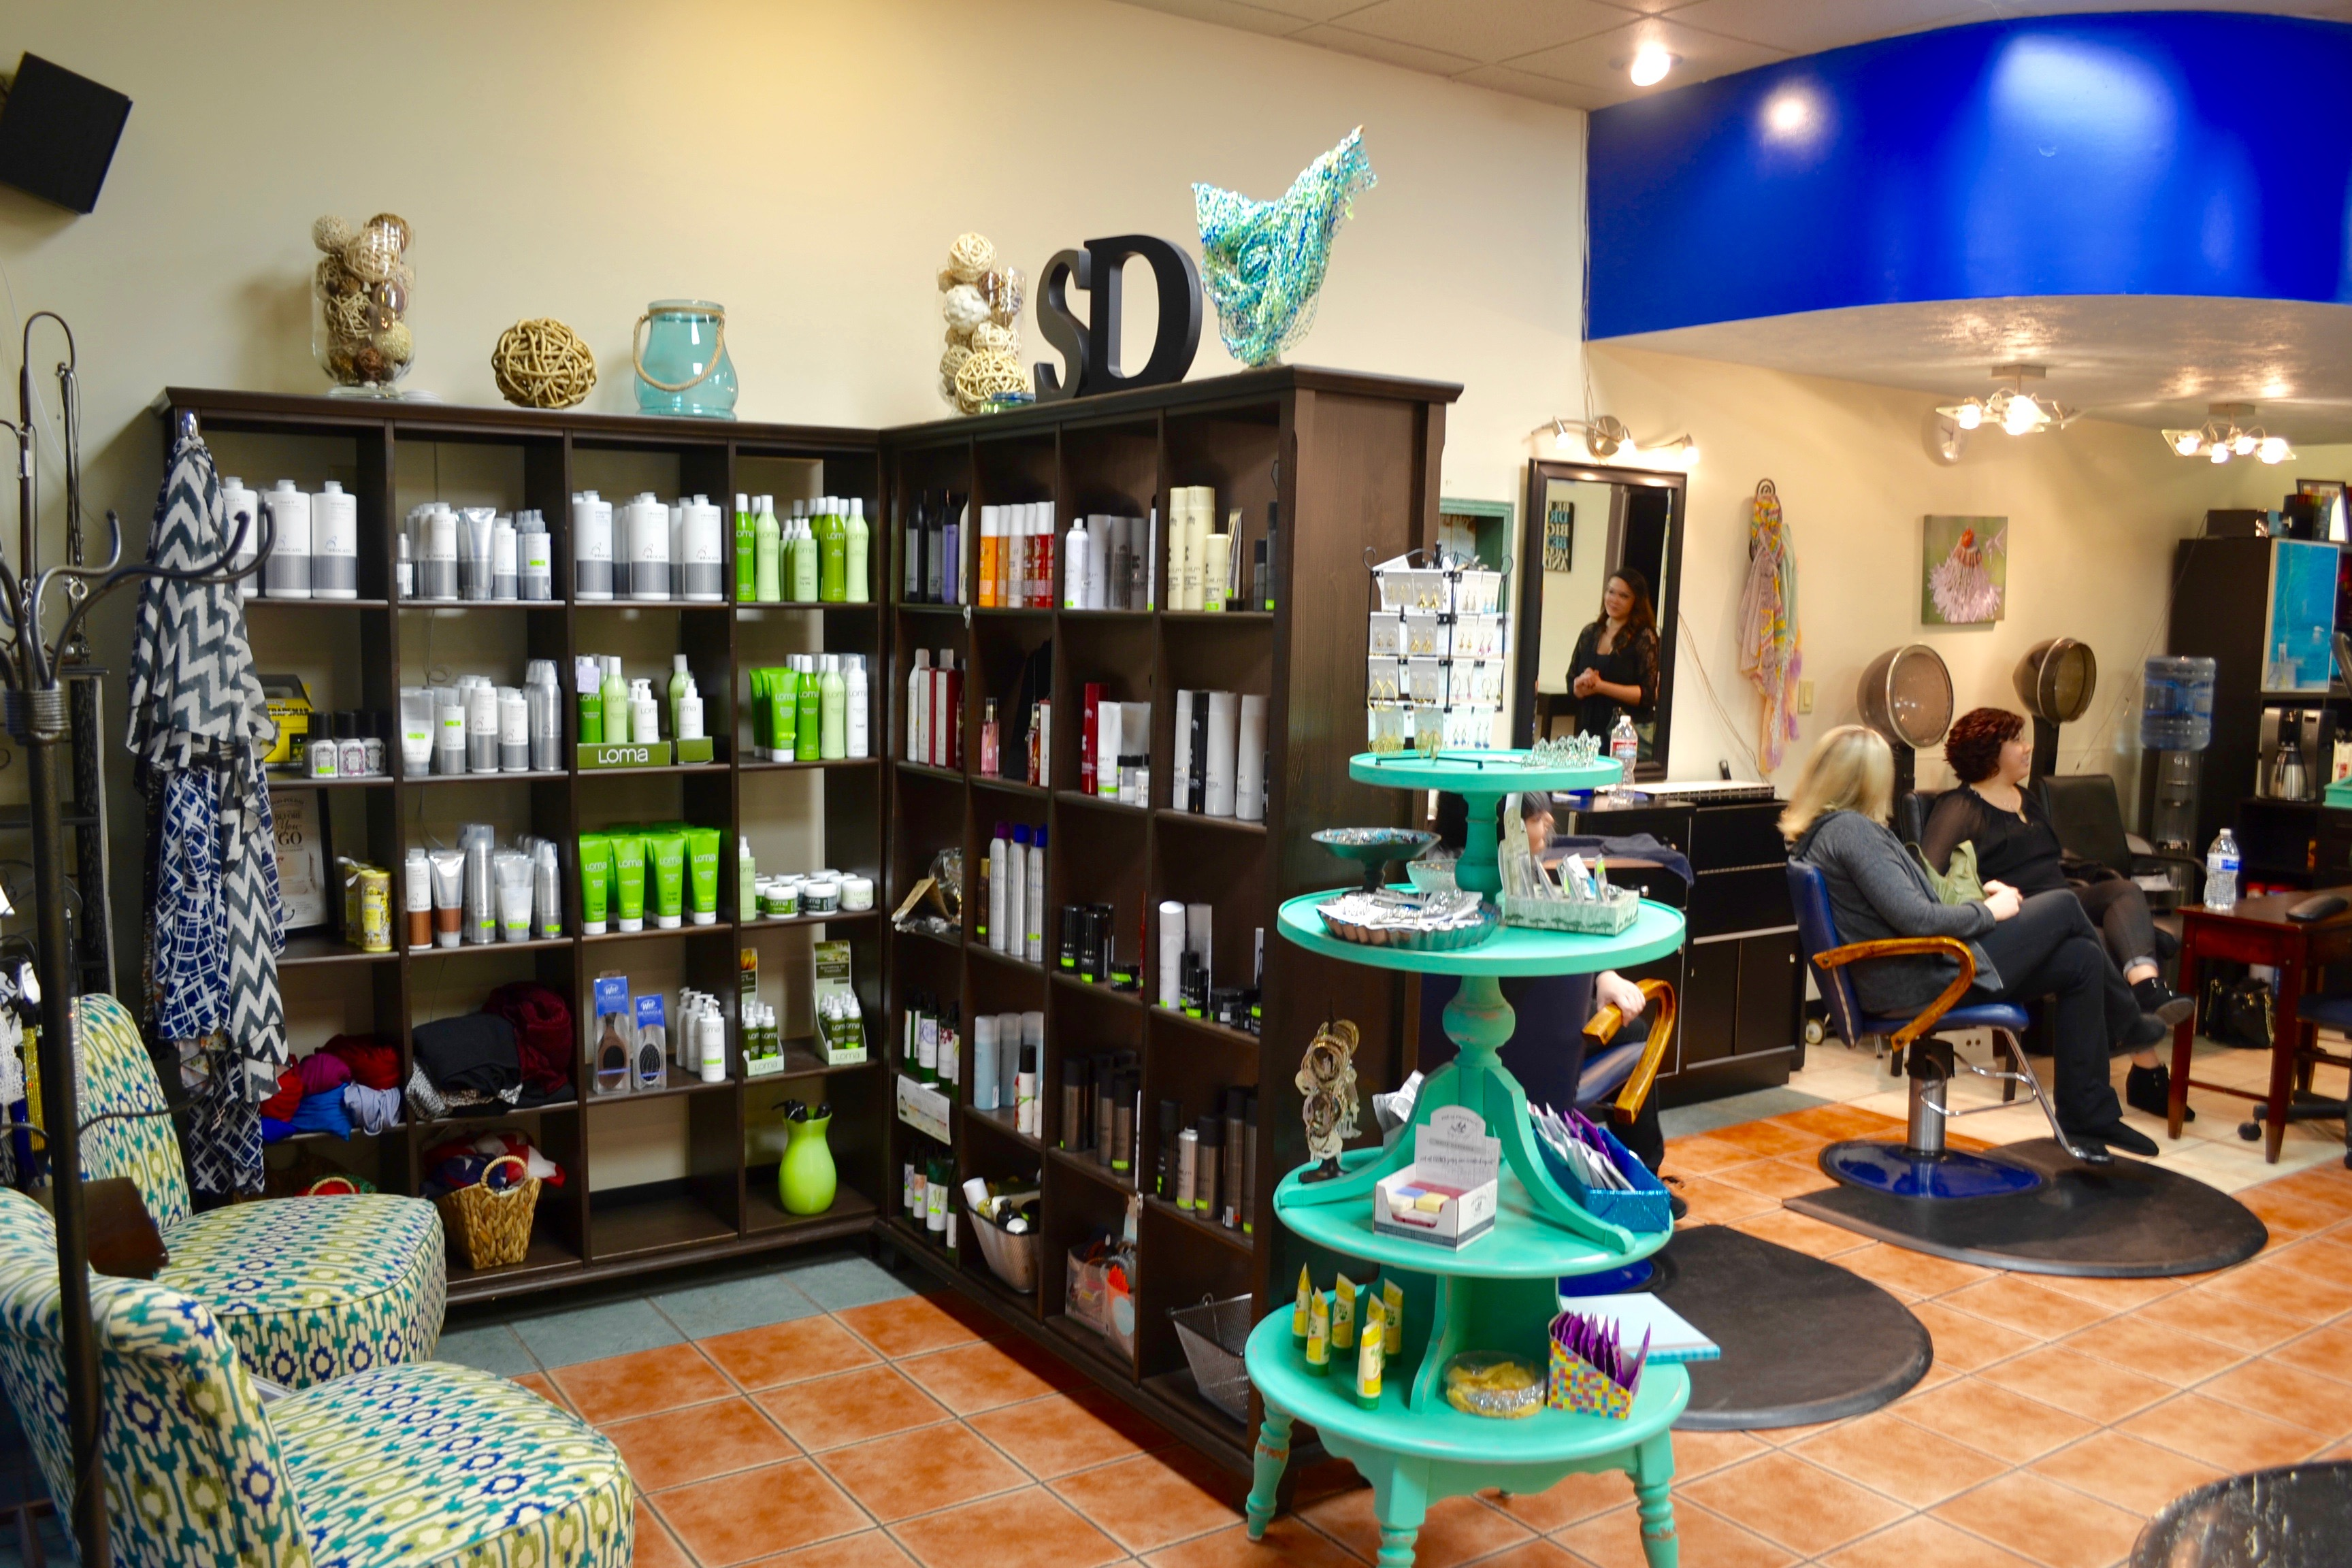 Haircut places in vancouver wa haircuts models ideas - Halo salon vancouver ...